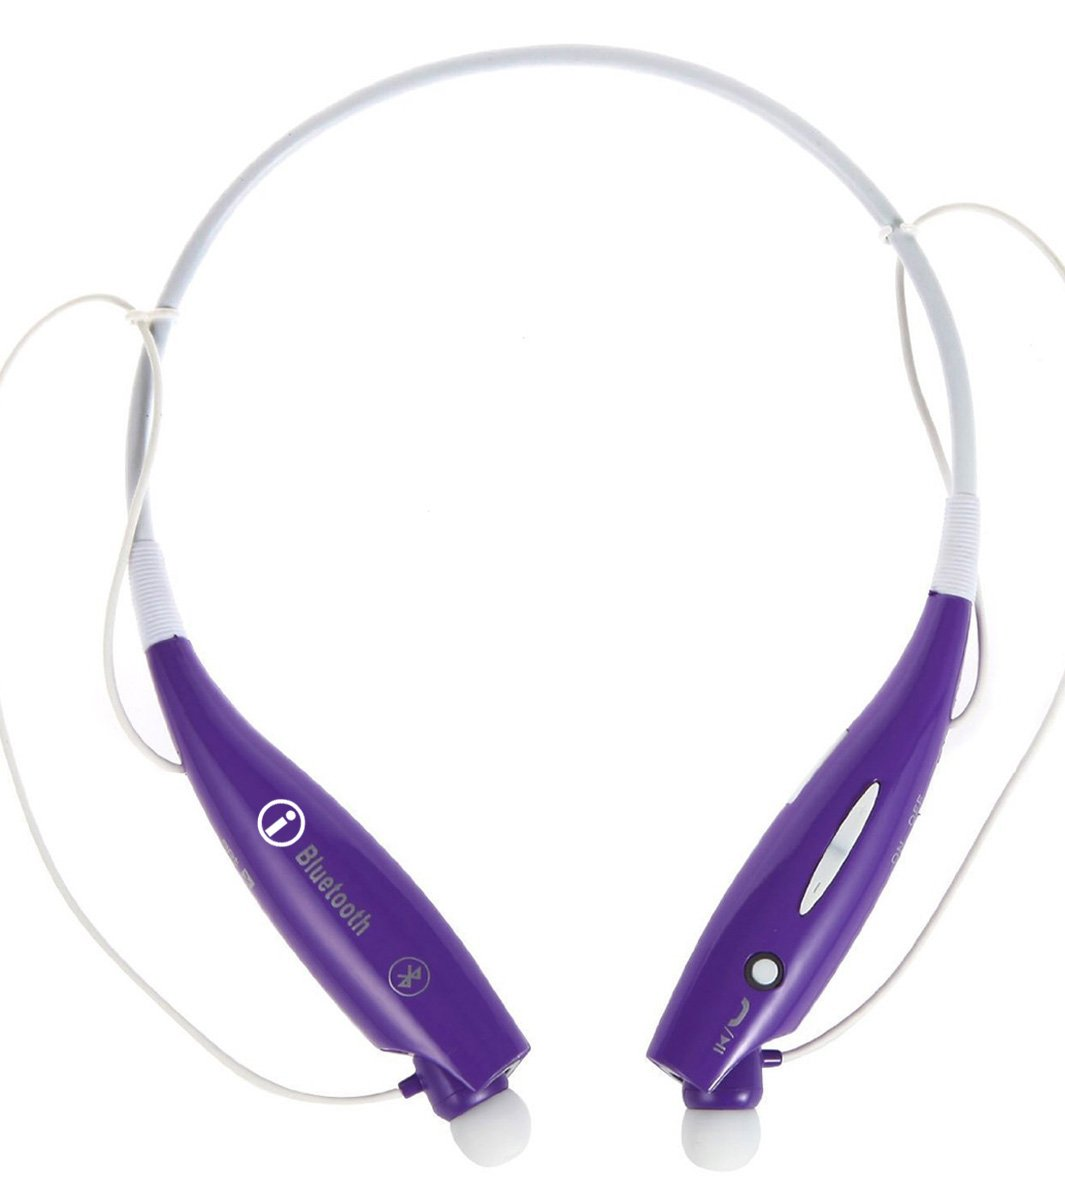 Universal S Gear -HV-Digitial 800 Wireless Music A2dp Stereo Bluetooth Headset Neckband Style Earphone Headphone performance flexible comfort quick Foldable PURPLE